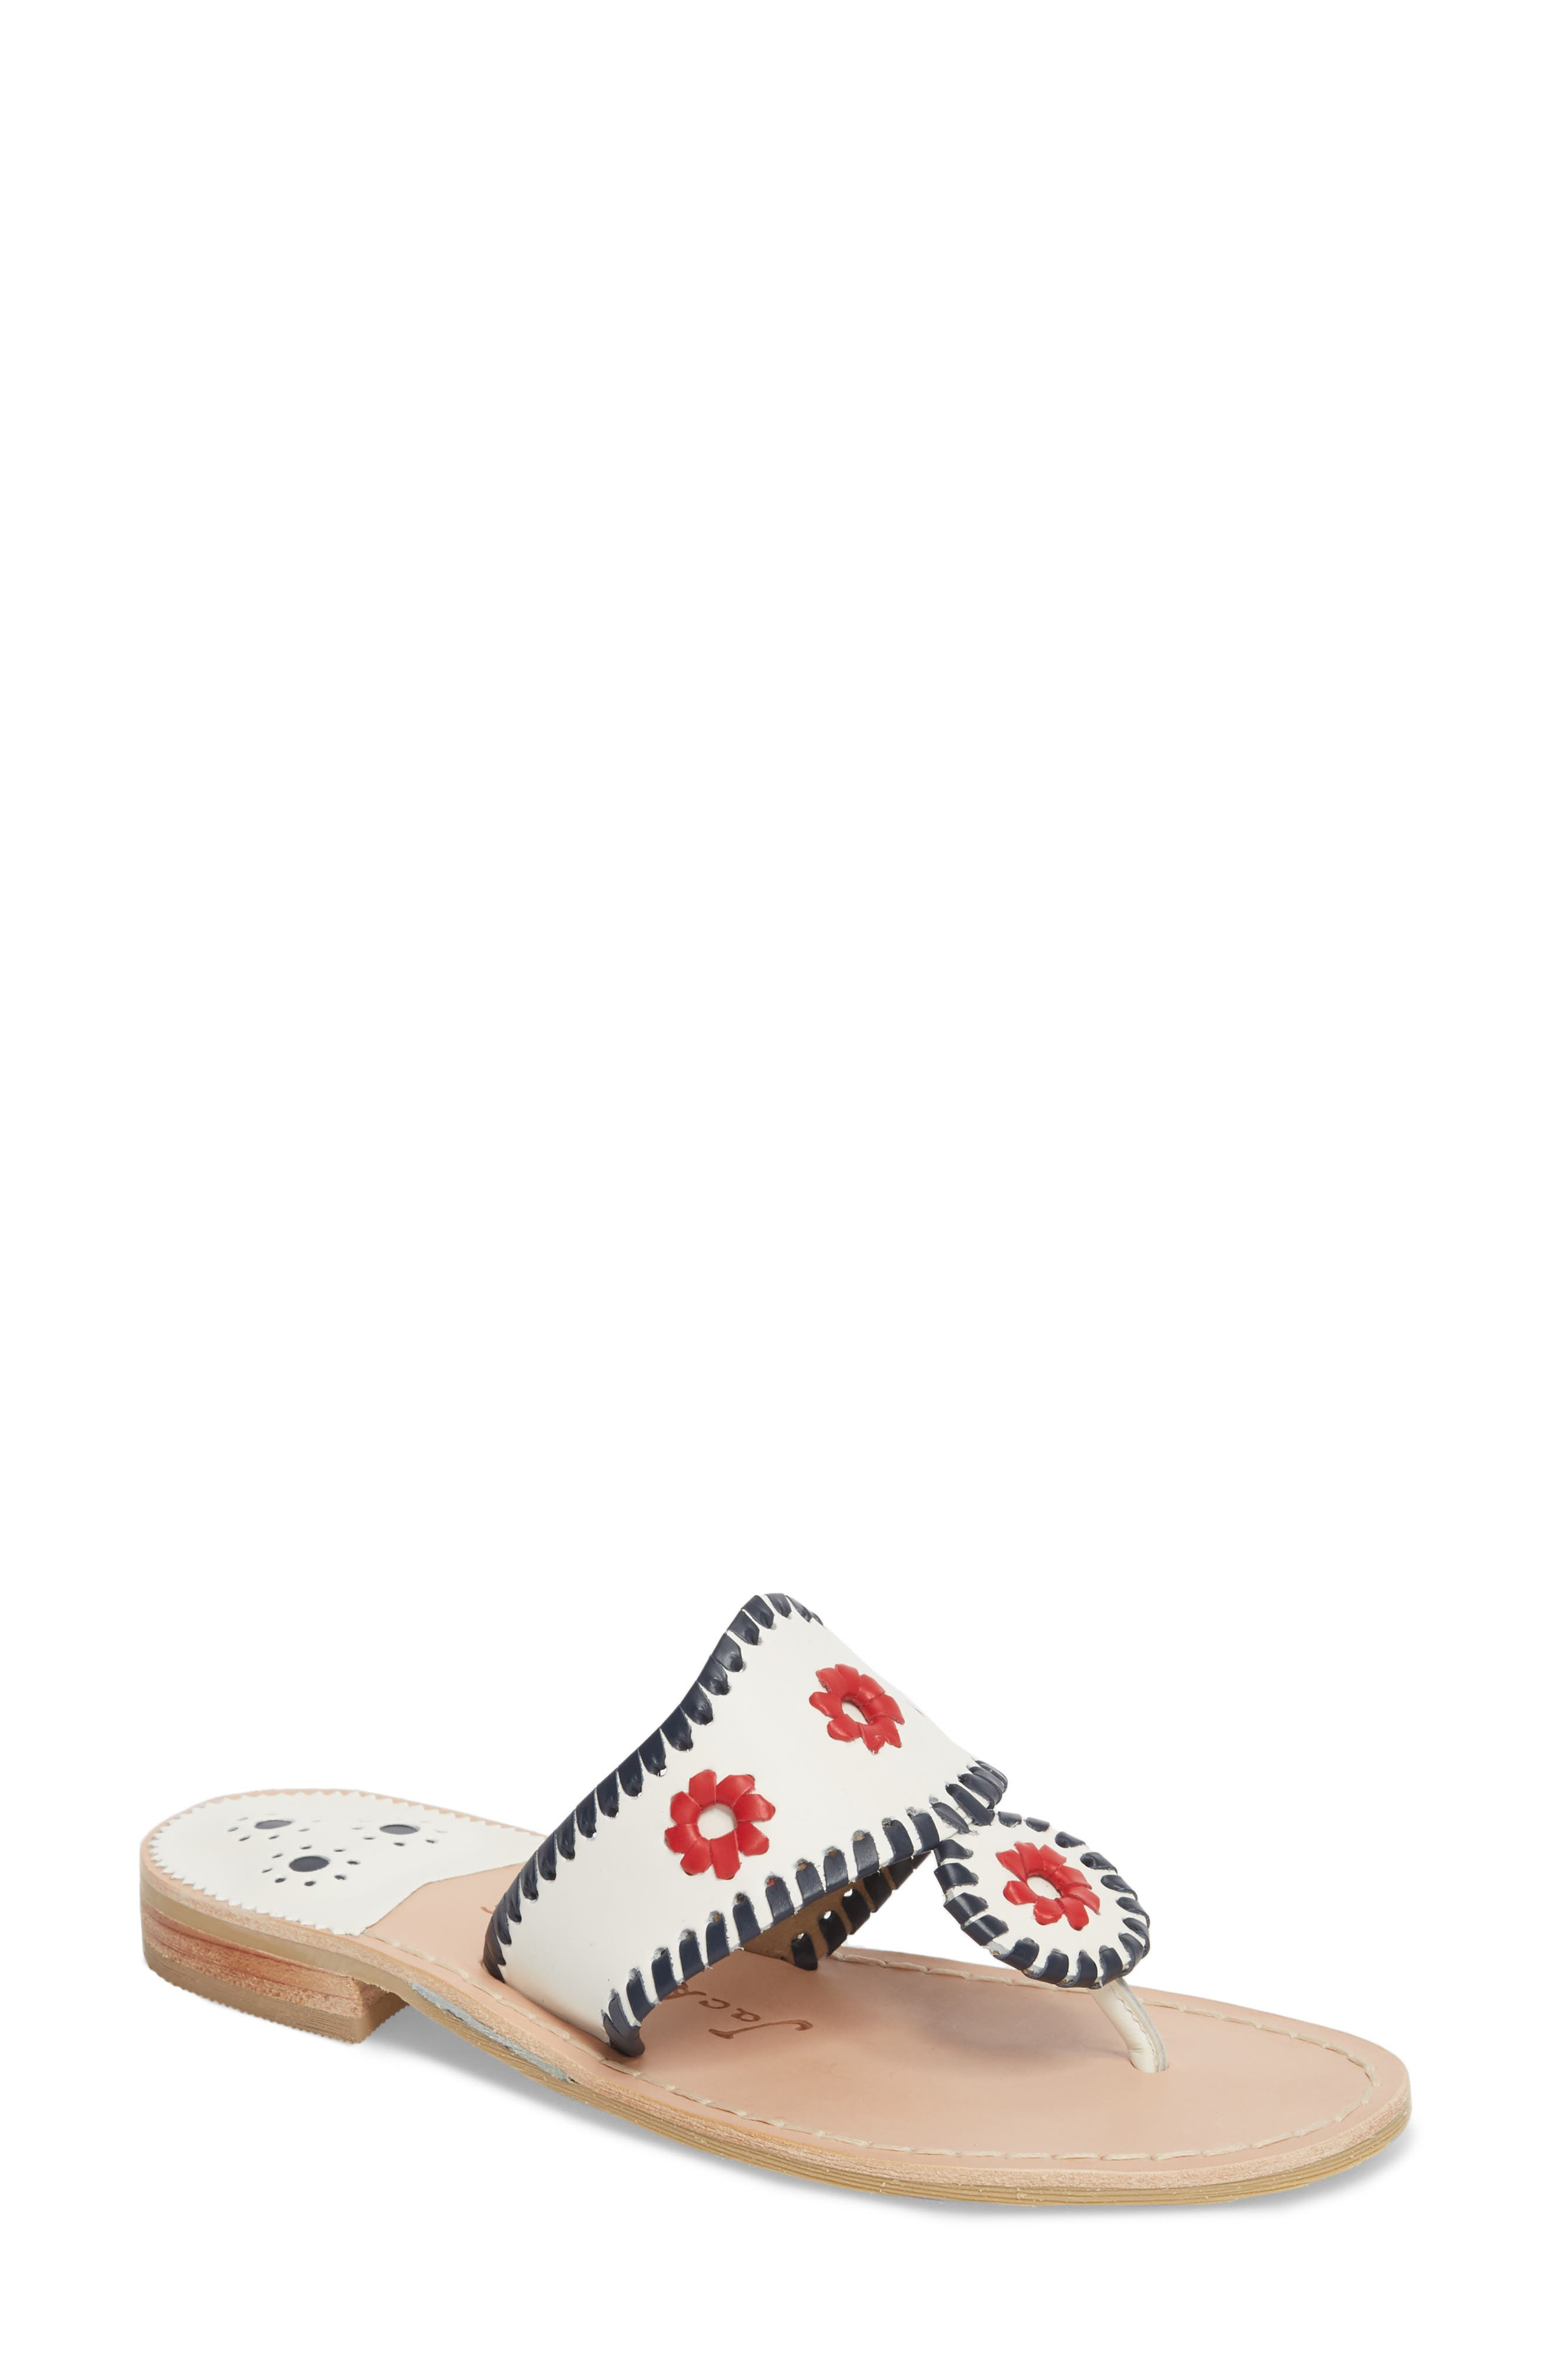 Patriotic Jack Sandal,                         Main,                         color, WHITE/ NAVY/ RED LEATHER